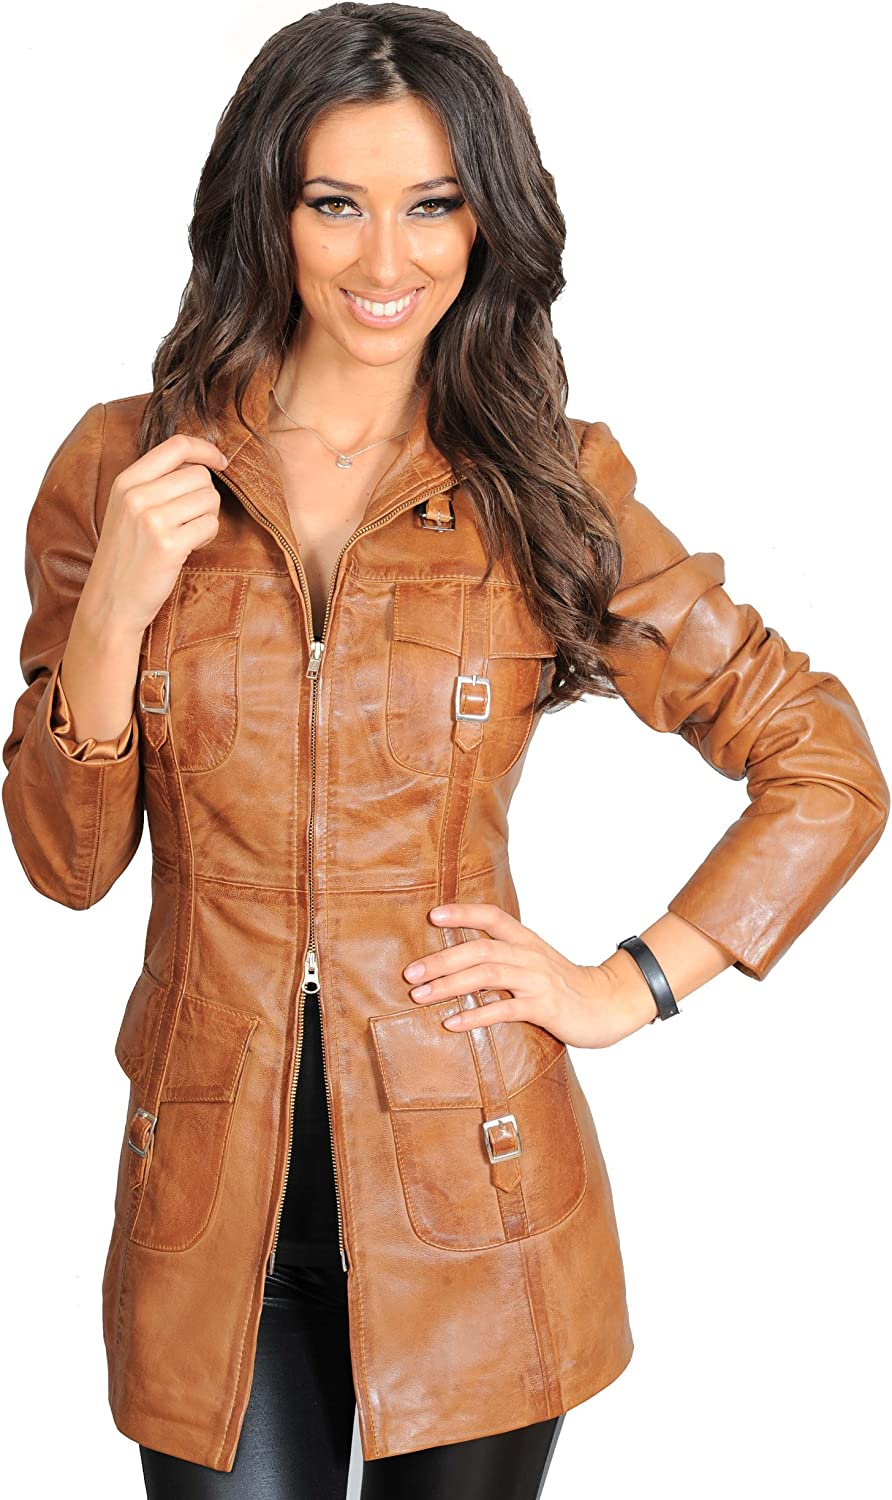 A1 FASHION GOODS Womens Online limited product Latest 3 Rare 4 Leather Tren Coat Fitted Real